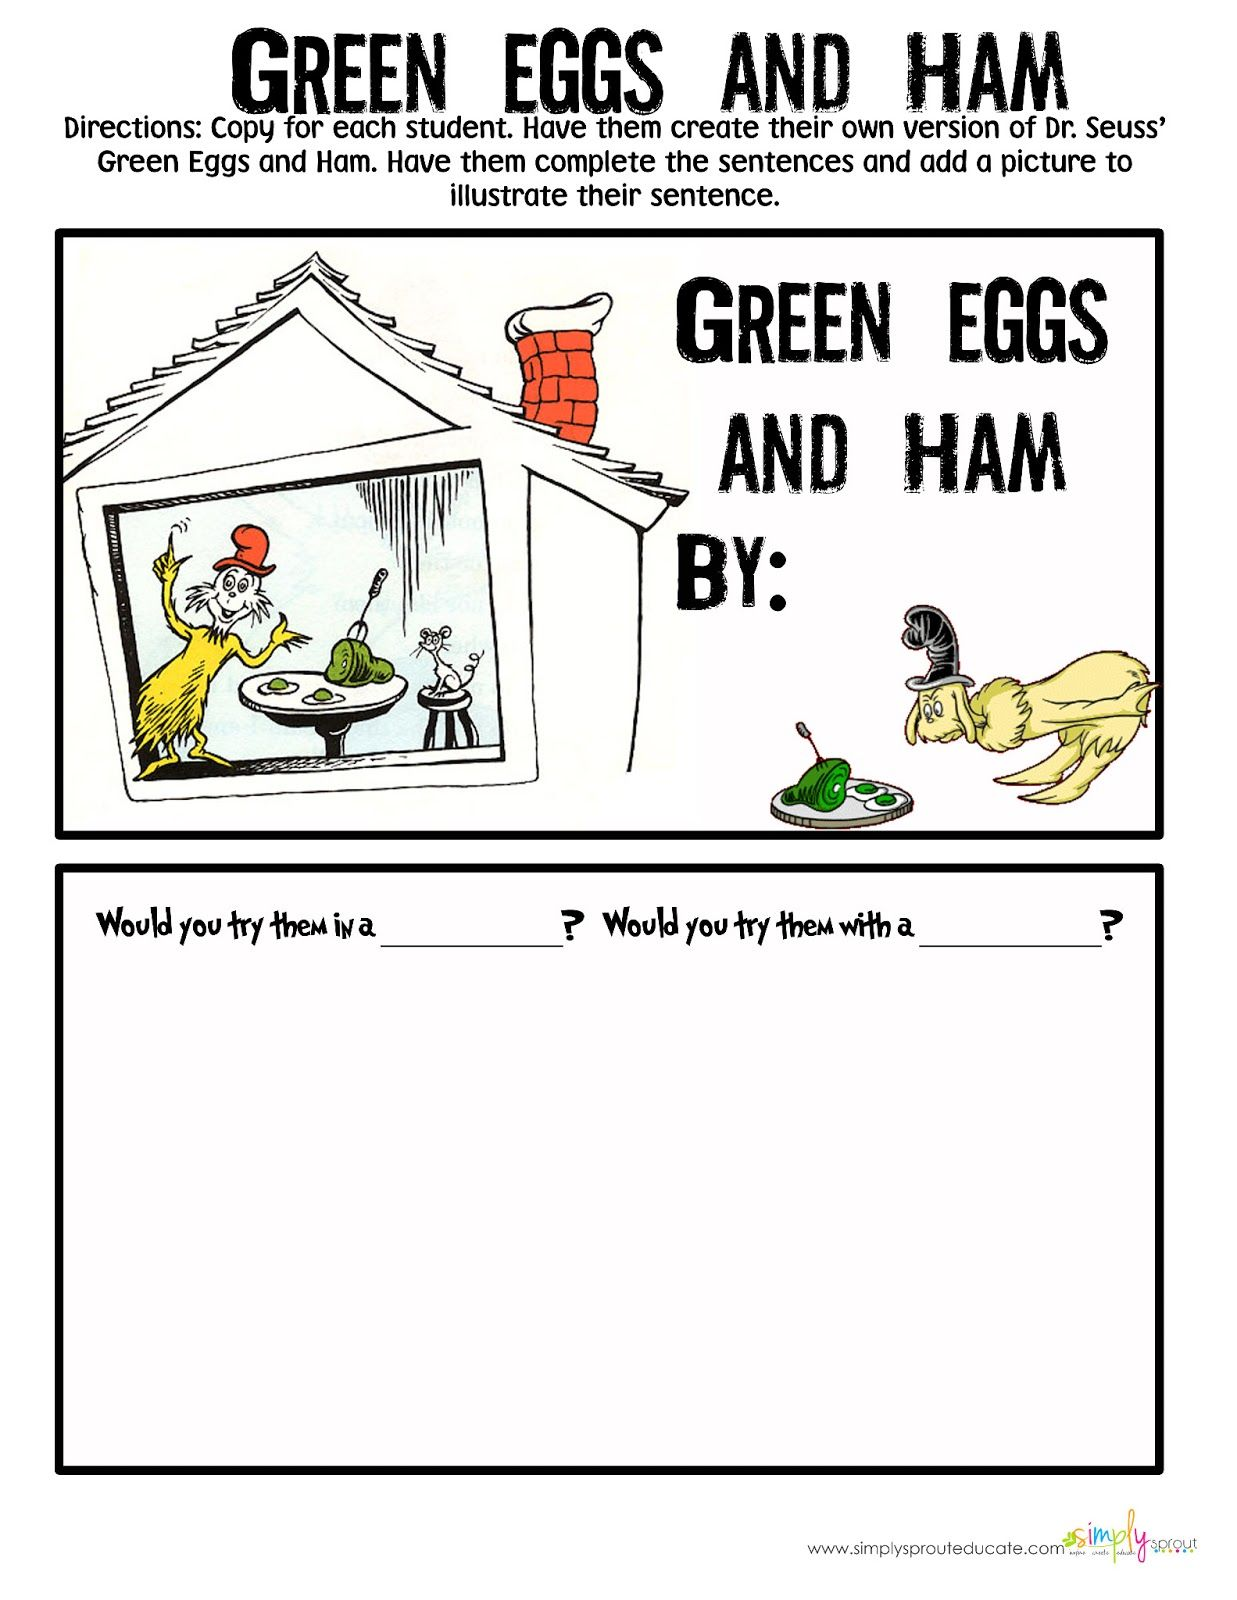 worksheet Green Eggs And Ham Worksheet well we saved the best for last who doesnt love green eggs and ham seuss activities classroom read across america